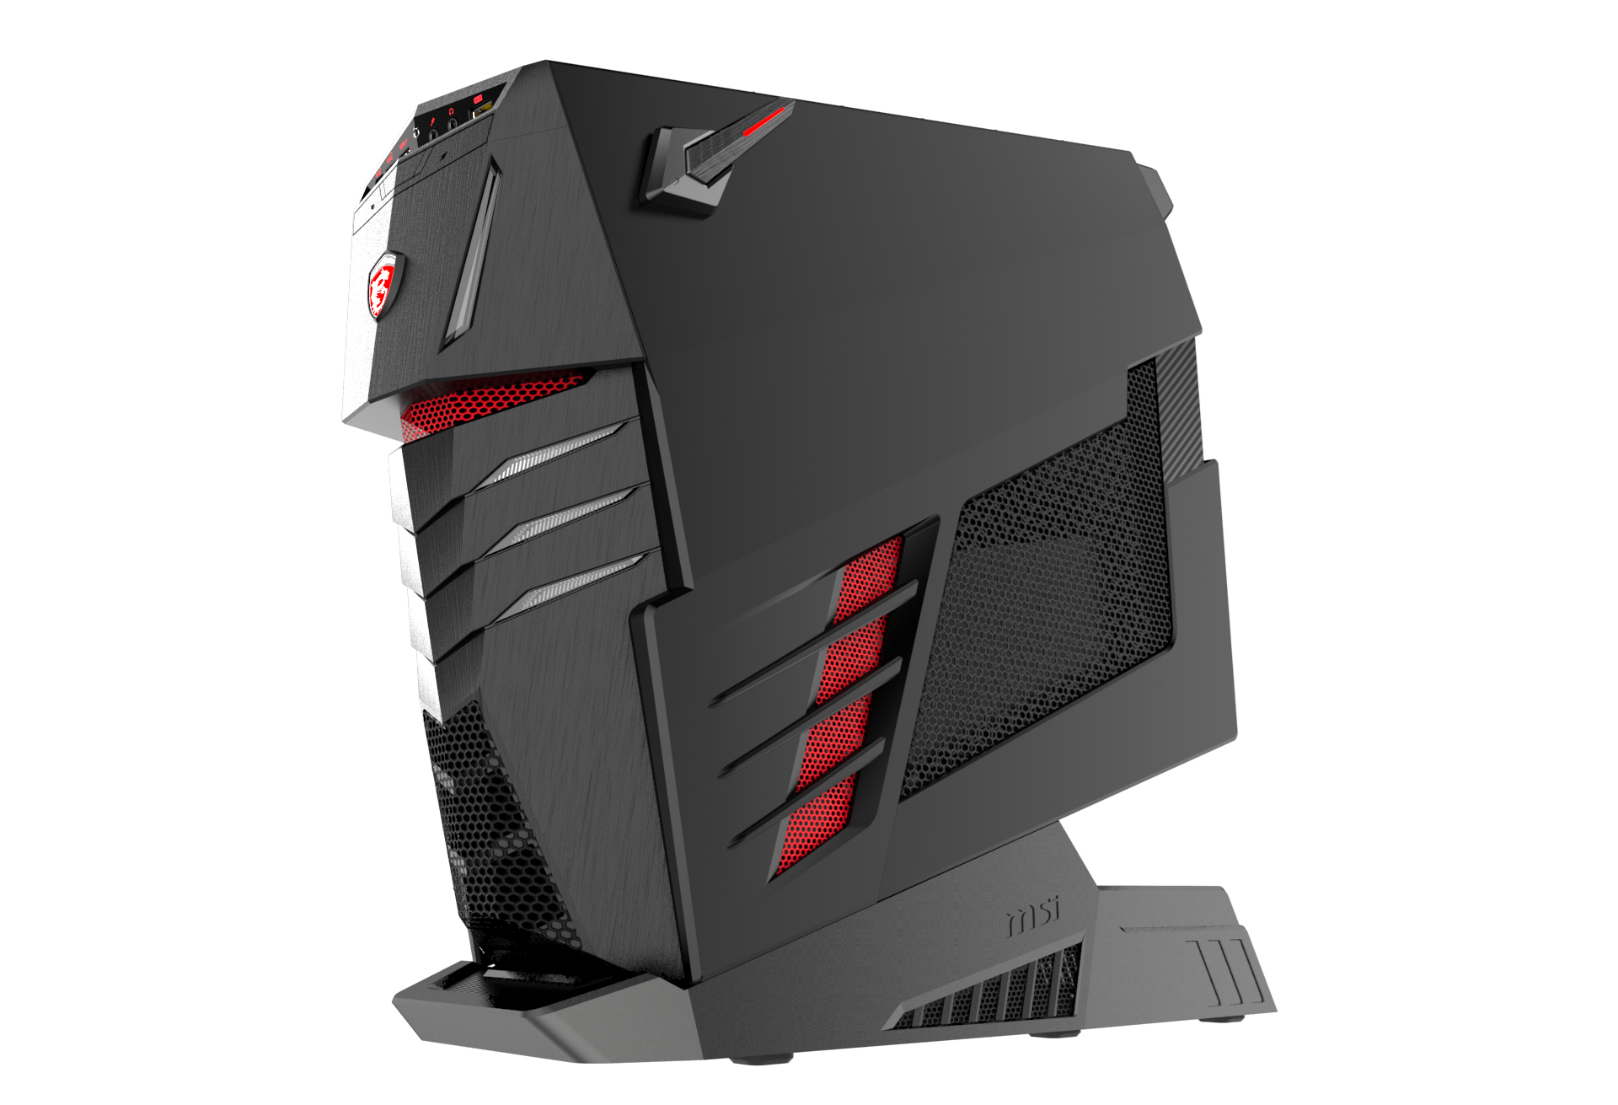 Supreme gaming desktop